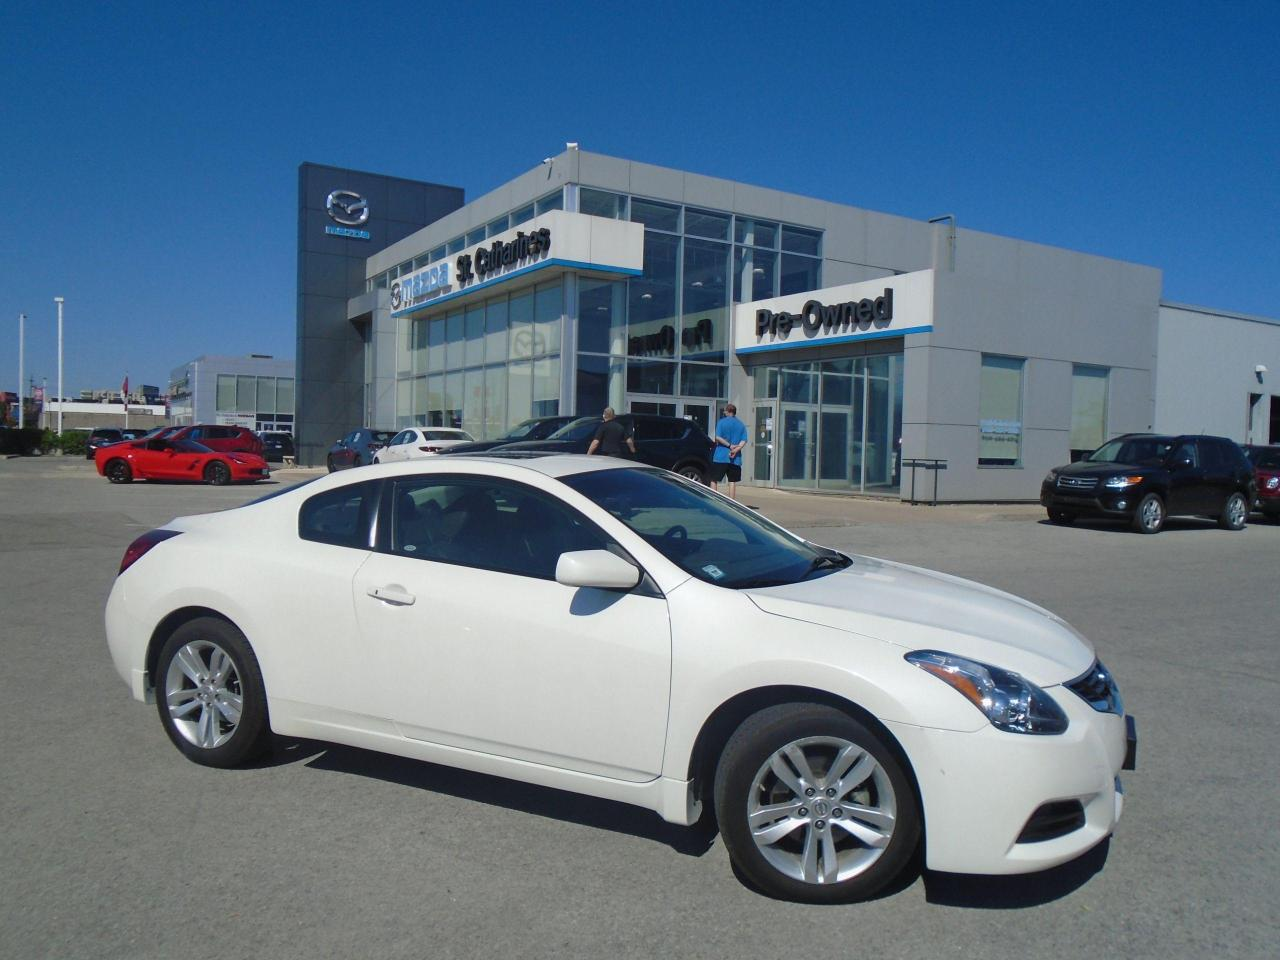 used 2010 nissan altima 2.5 s for sale in st catharines, ontario carpages.ca